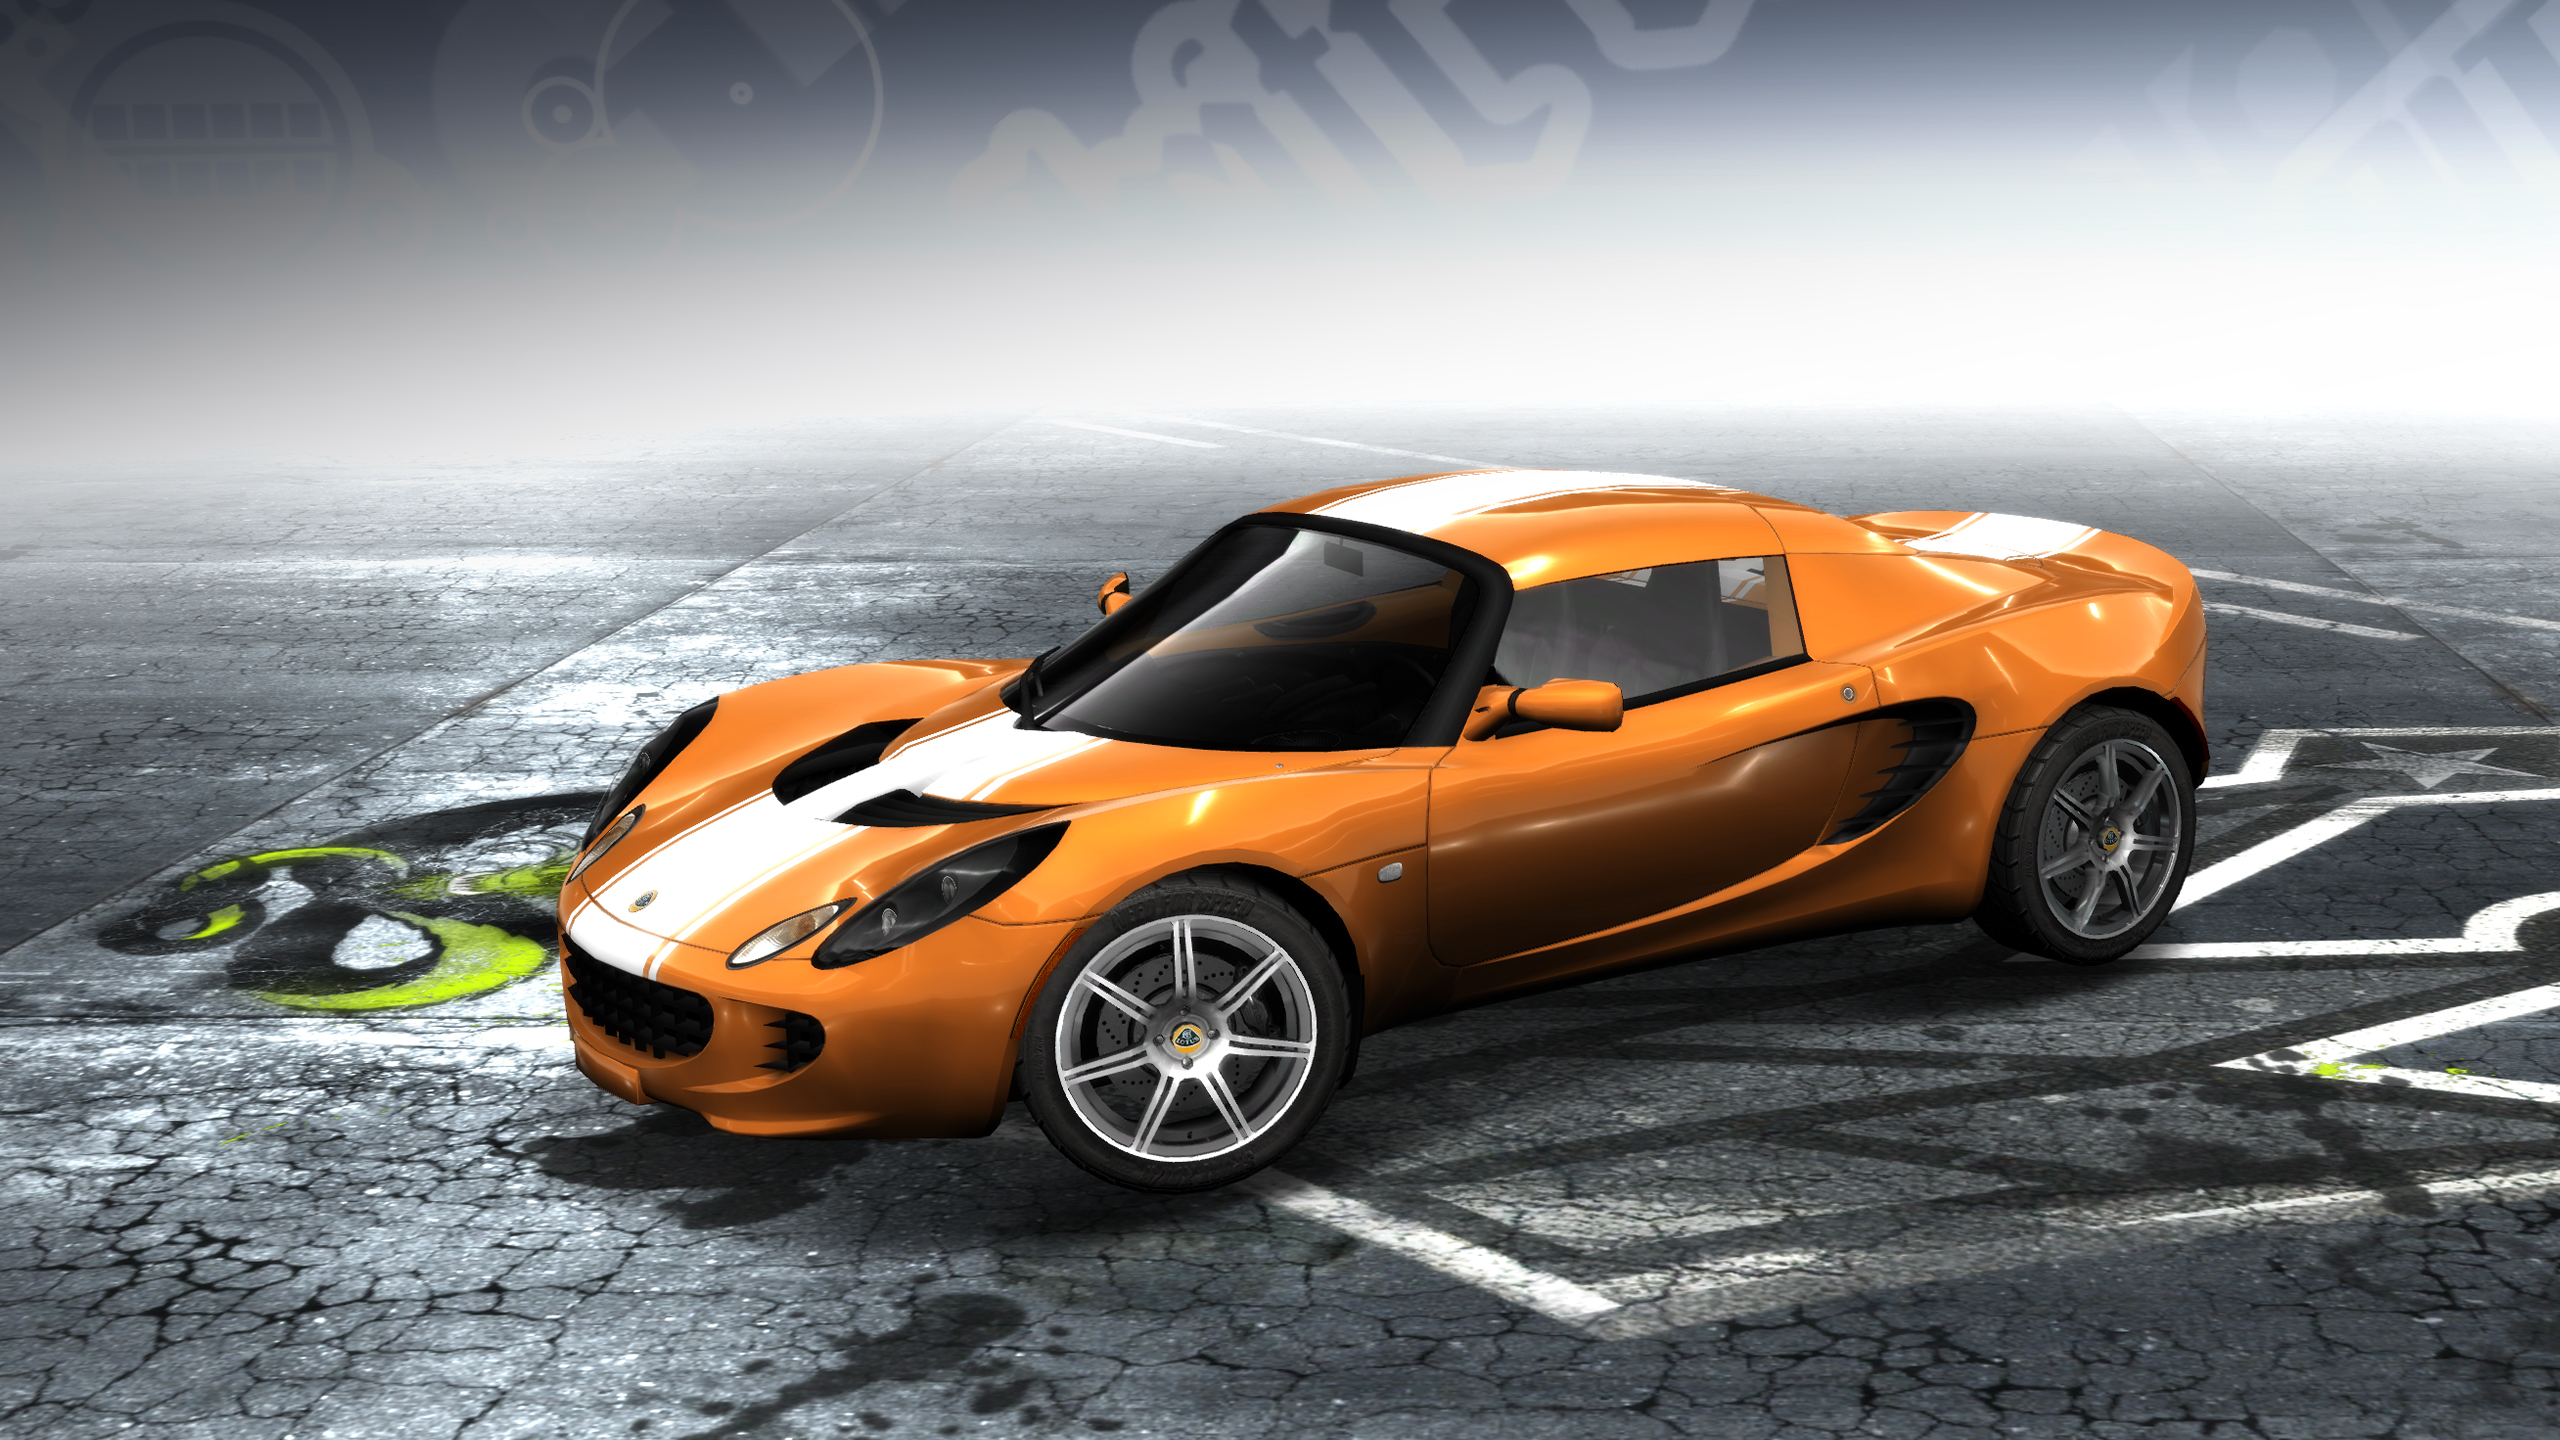 lotus elise 111r need for speed wiki fandom powered by wikia. Black Bedroom Furniture Sets. Home Design Ideas